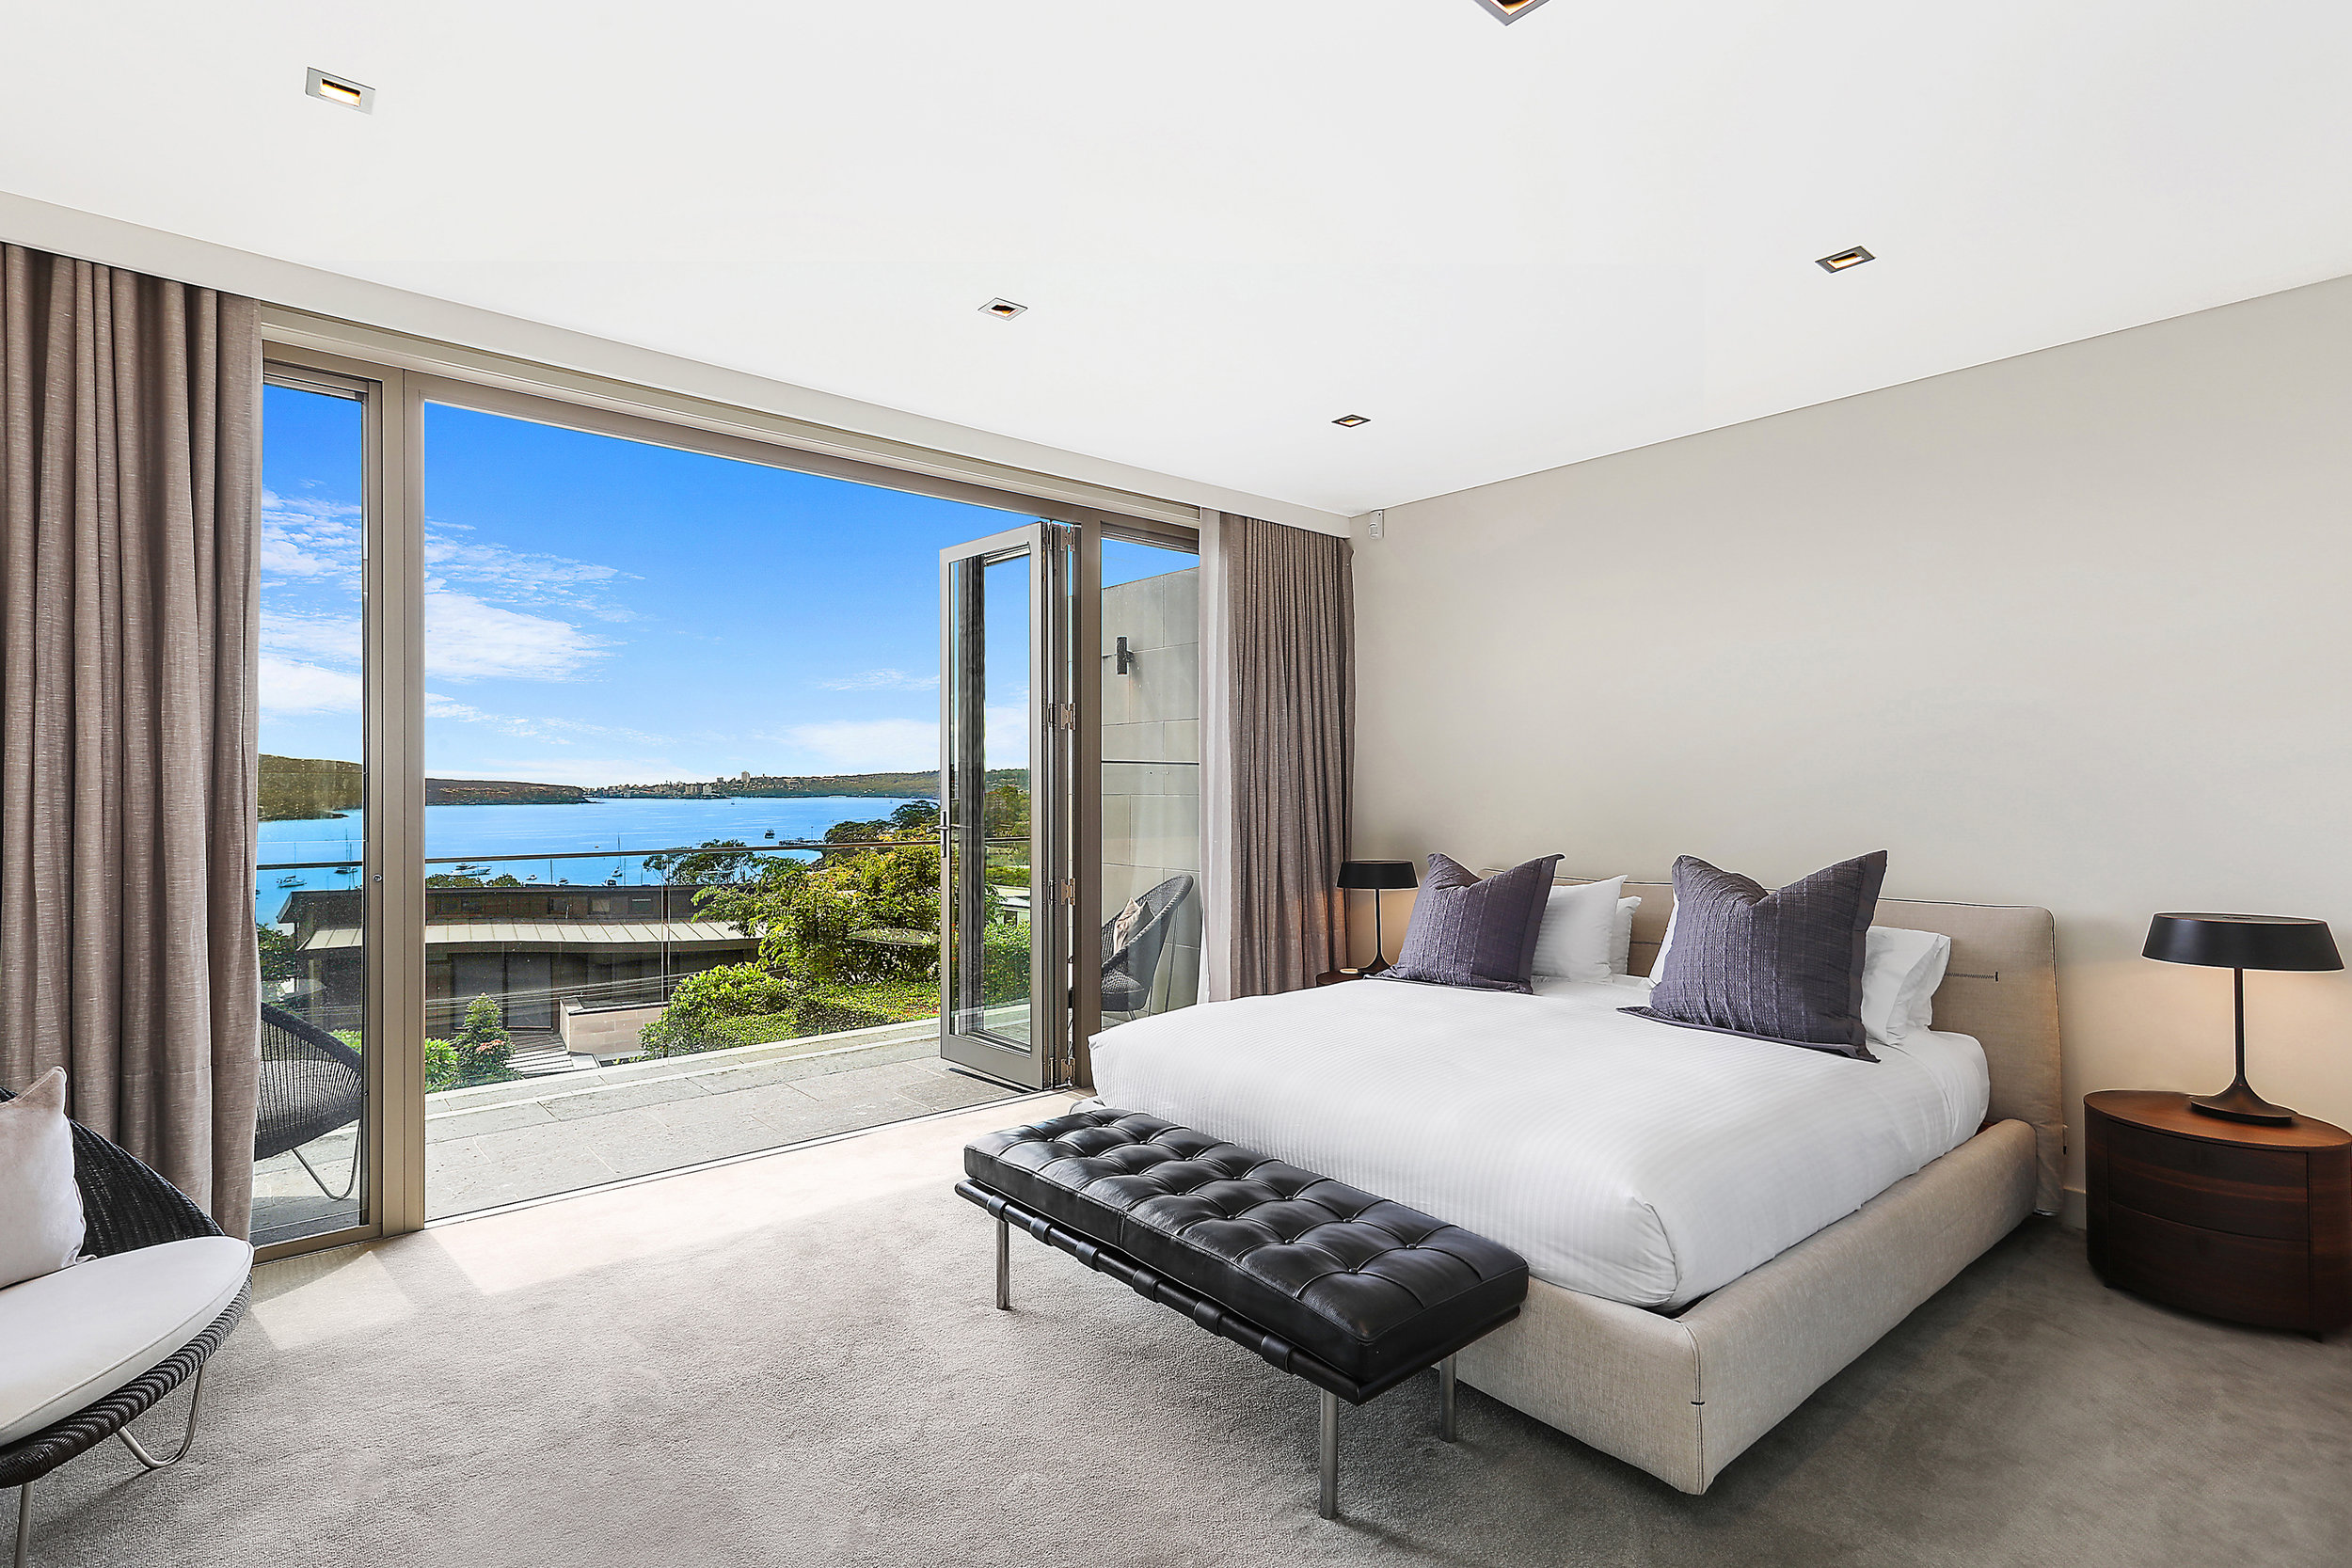 The master bedroom with it's magical view.